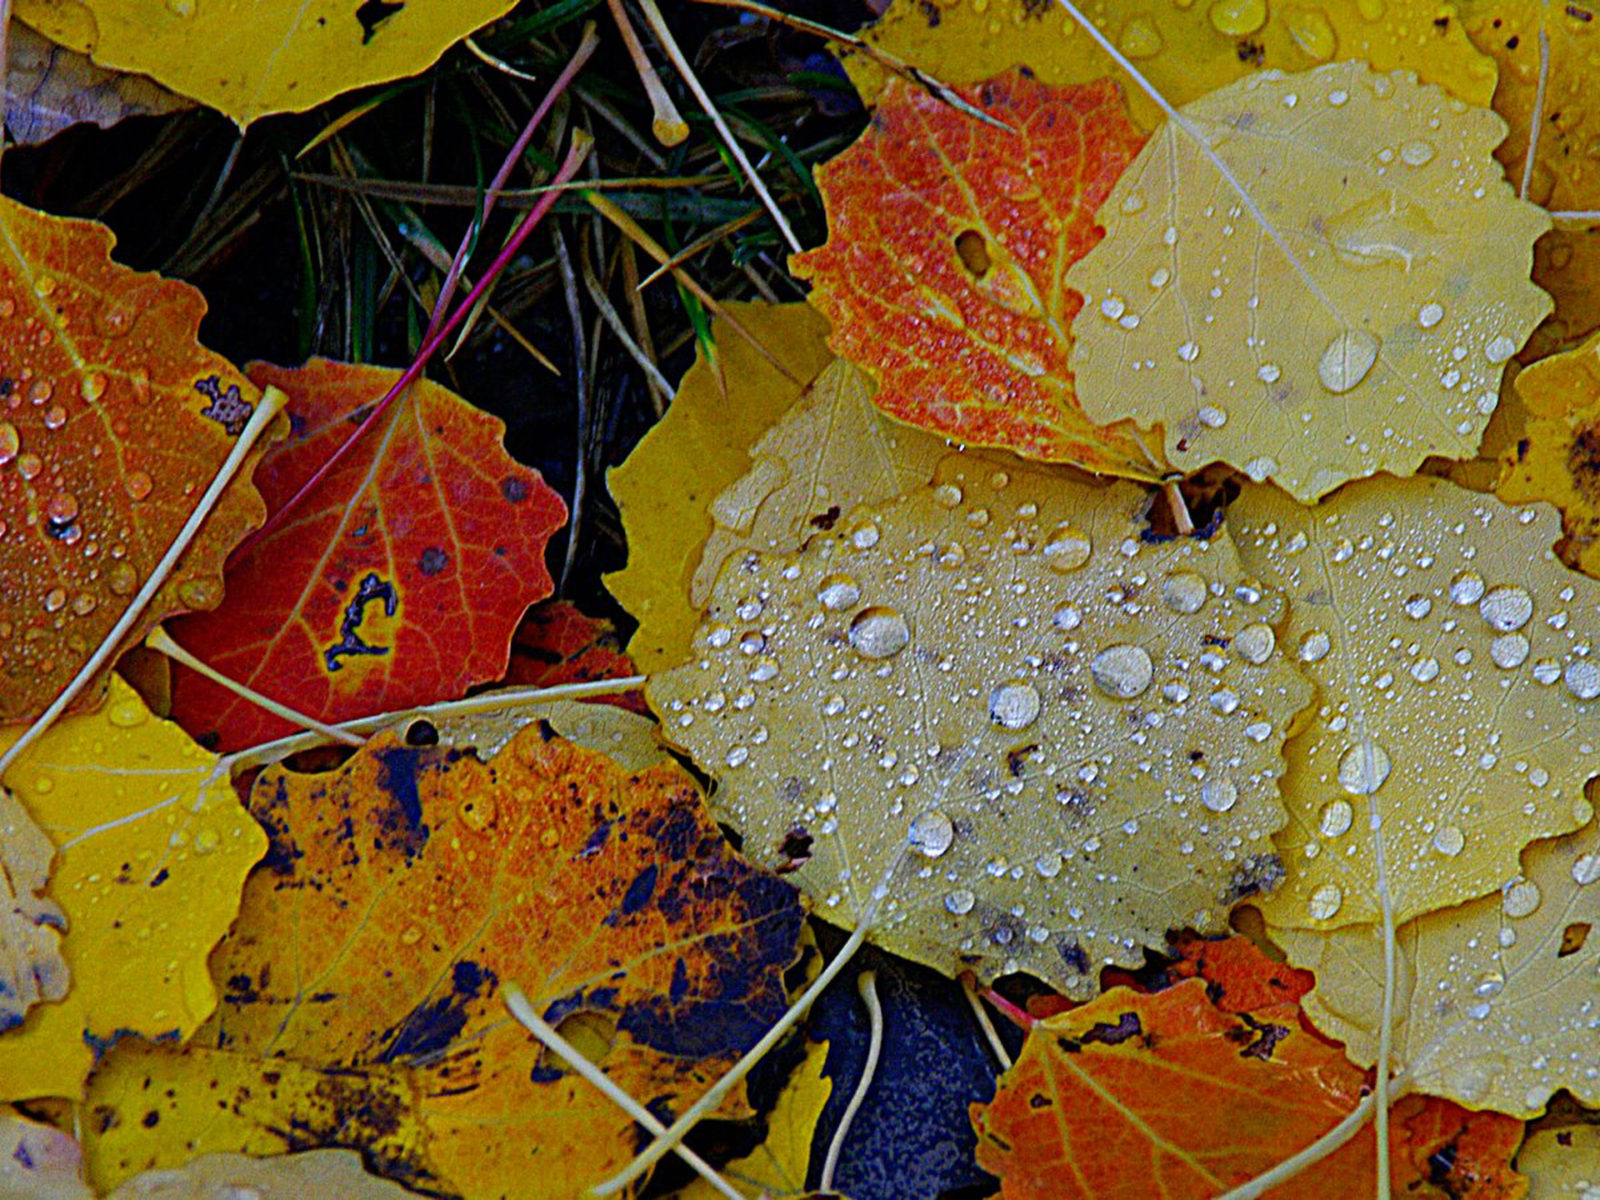 Red Fall Leaves Iphone Wallpaper Autumn Rain Yellow Leaves Background Hd 9472